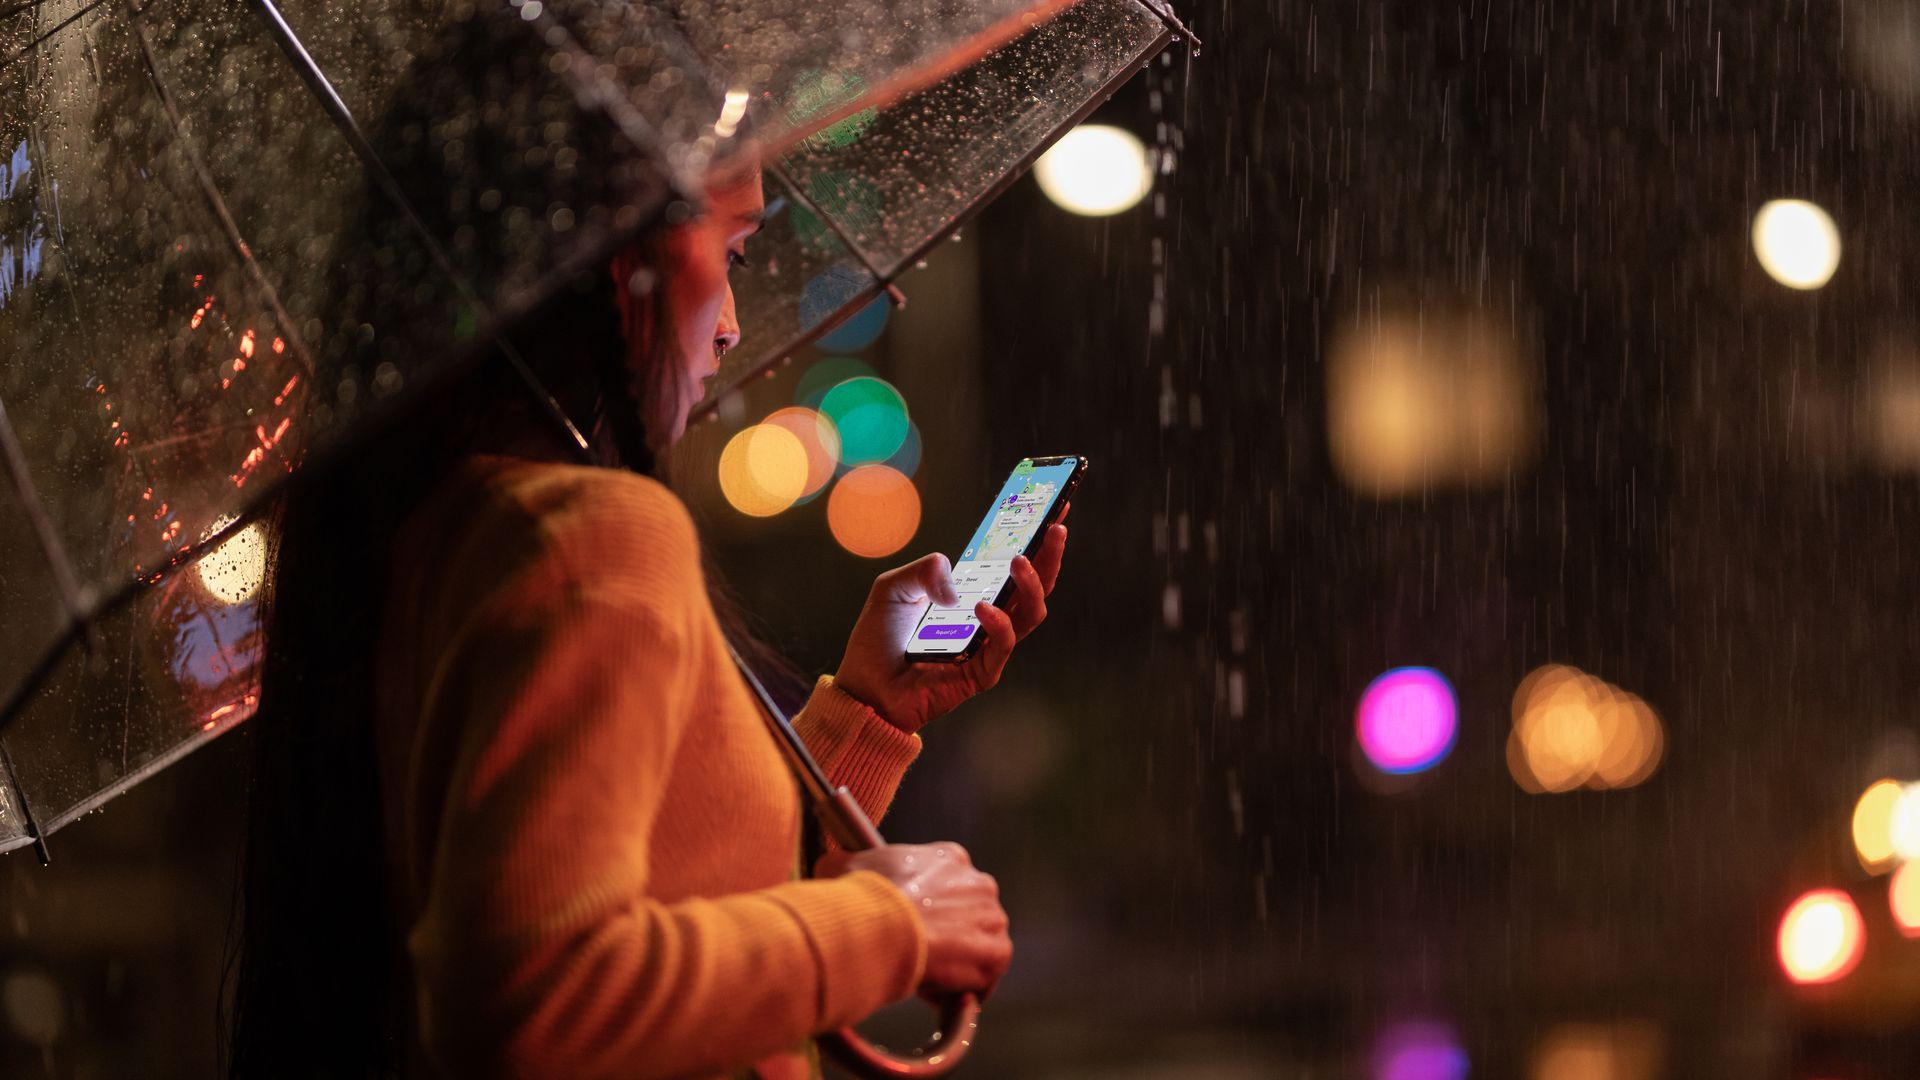 A woman holding an iPhone Xs Max in the rain